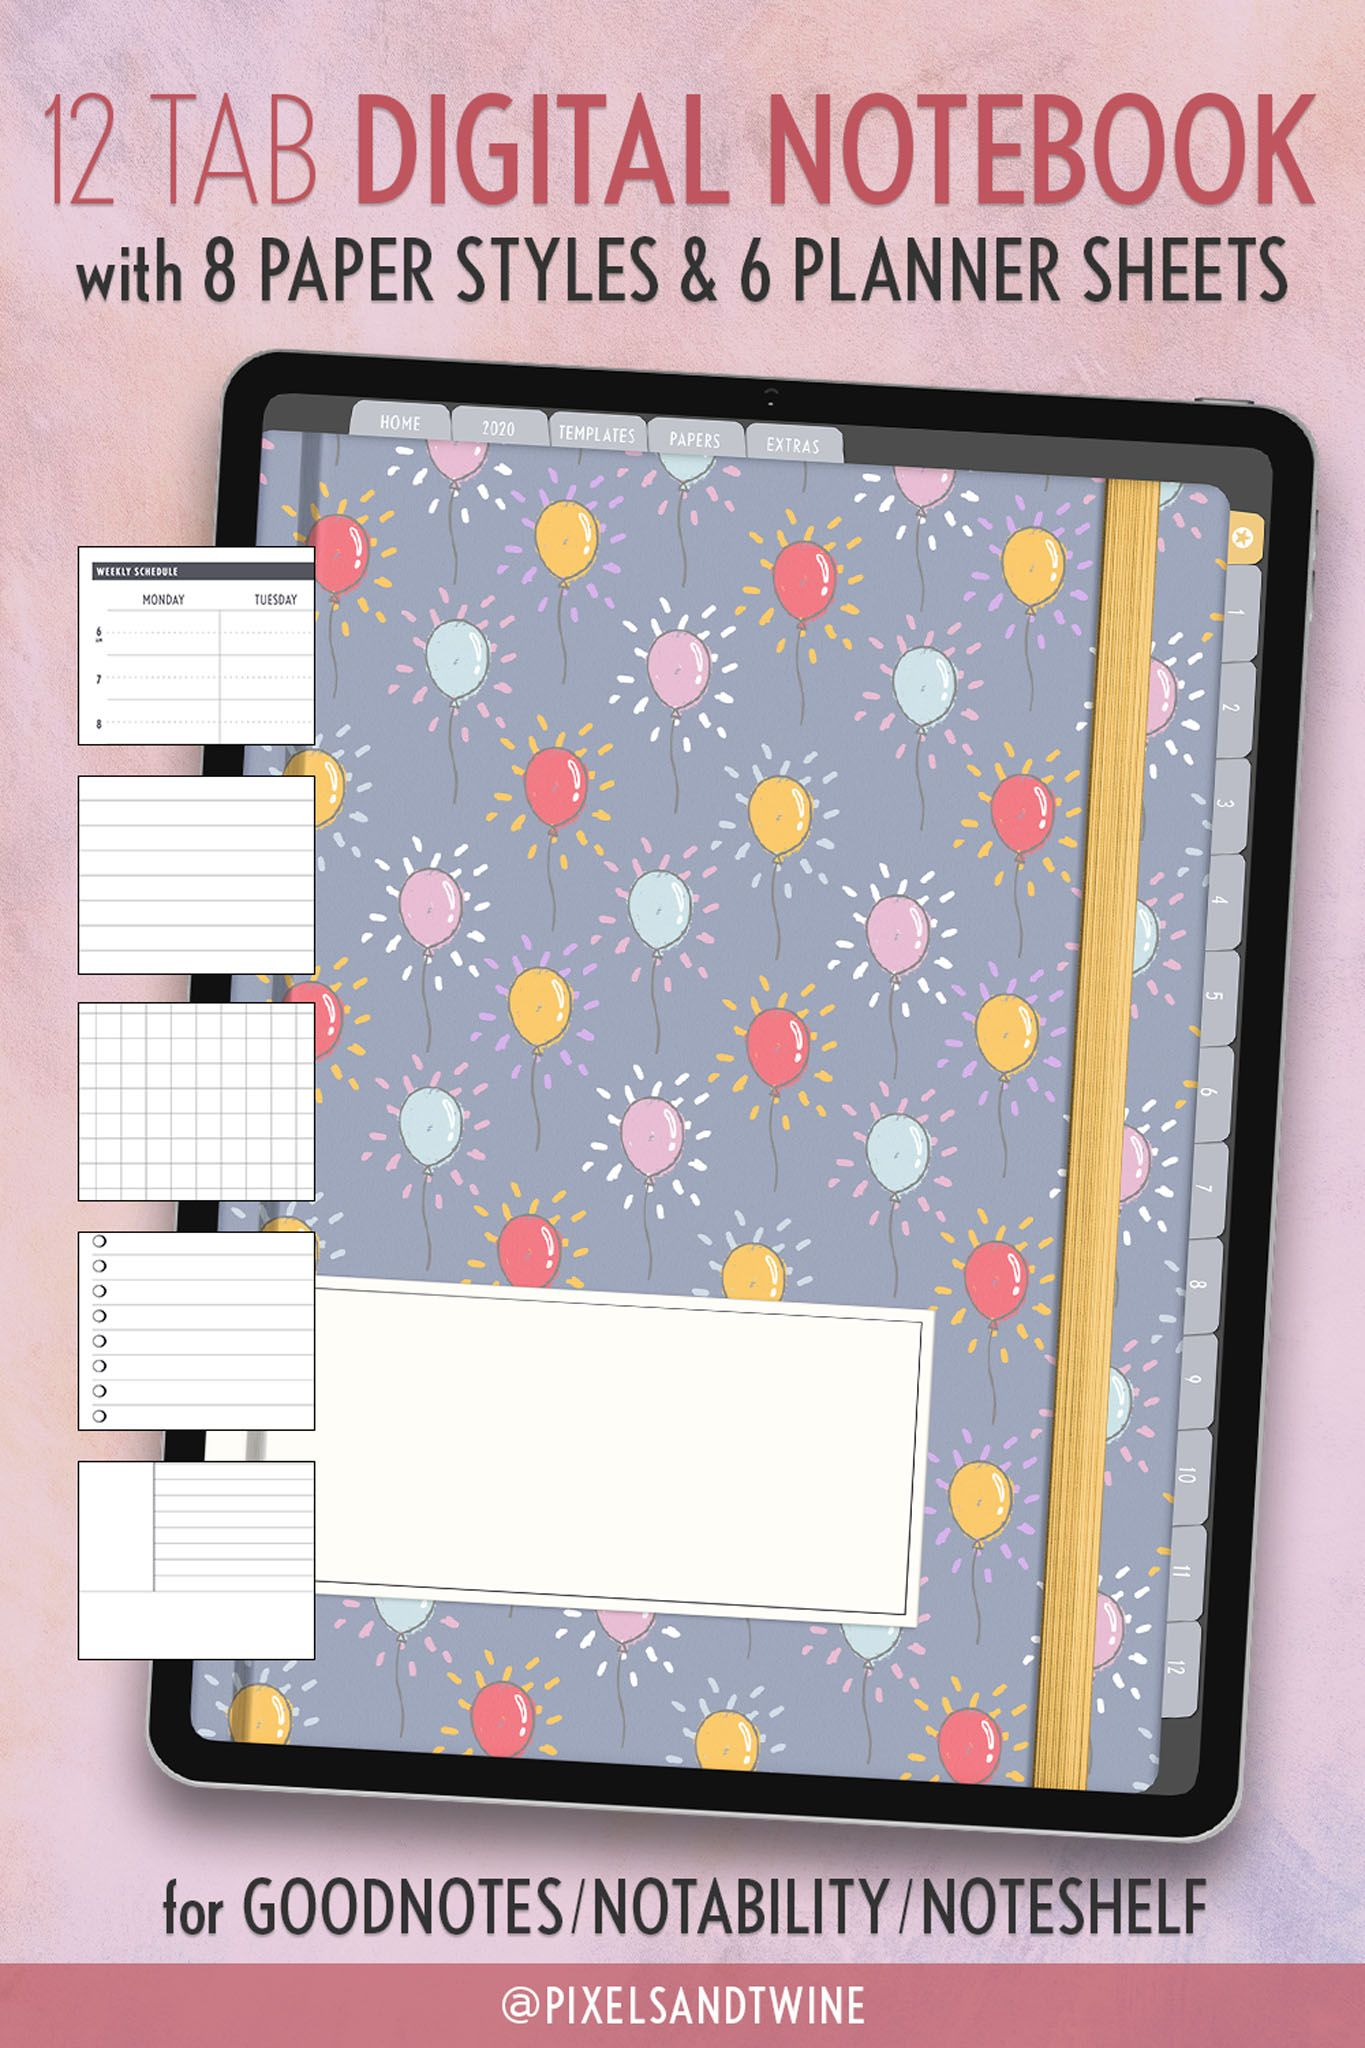 Digital Notebook for Goodnotes, 12 Subject Notability, Noteshelf, Goodnotes Notebook - Journal, Meeting, Student iPad Notes